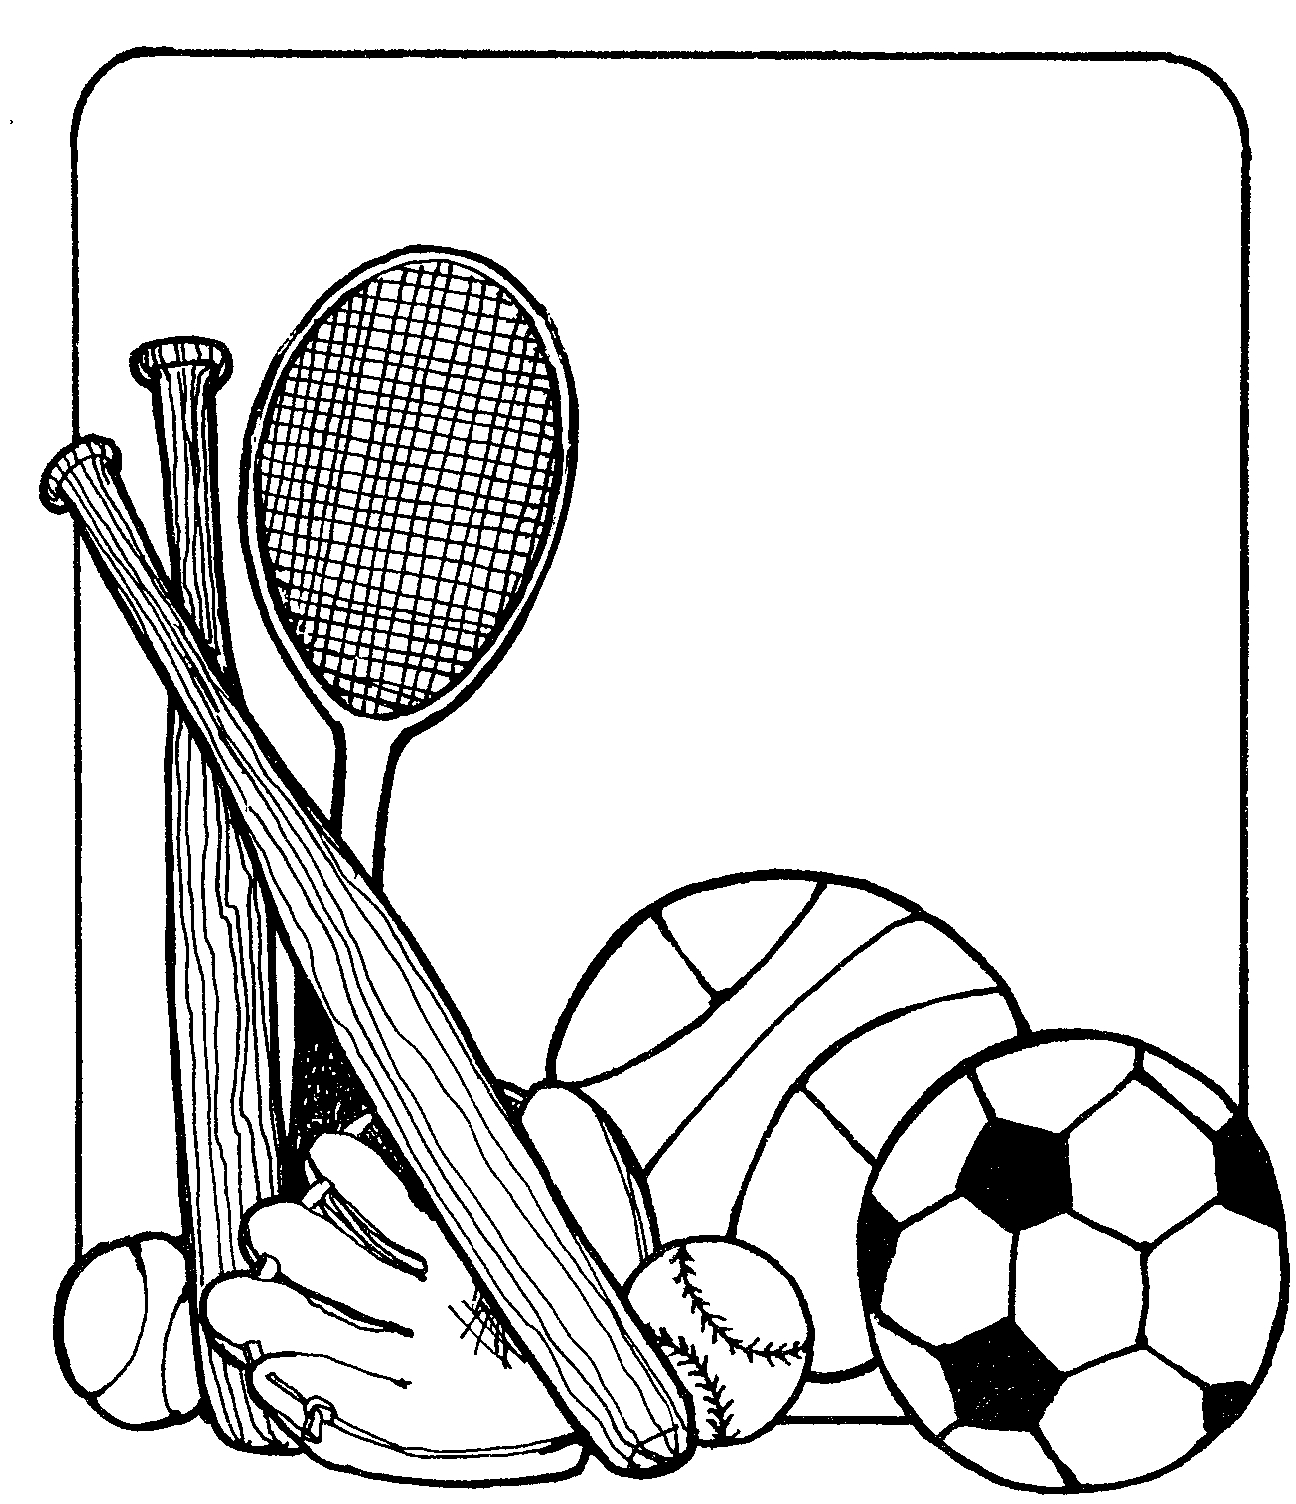 Free Sports Equipment Clipart, Download Free Clip Art, Free.